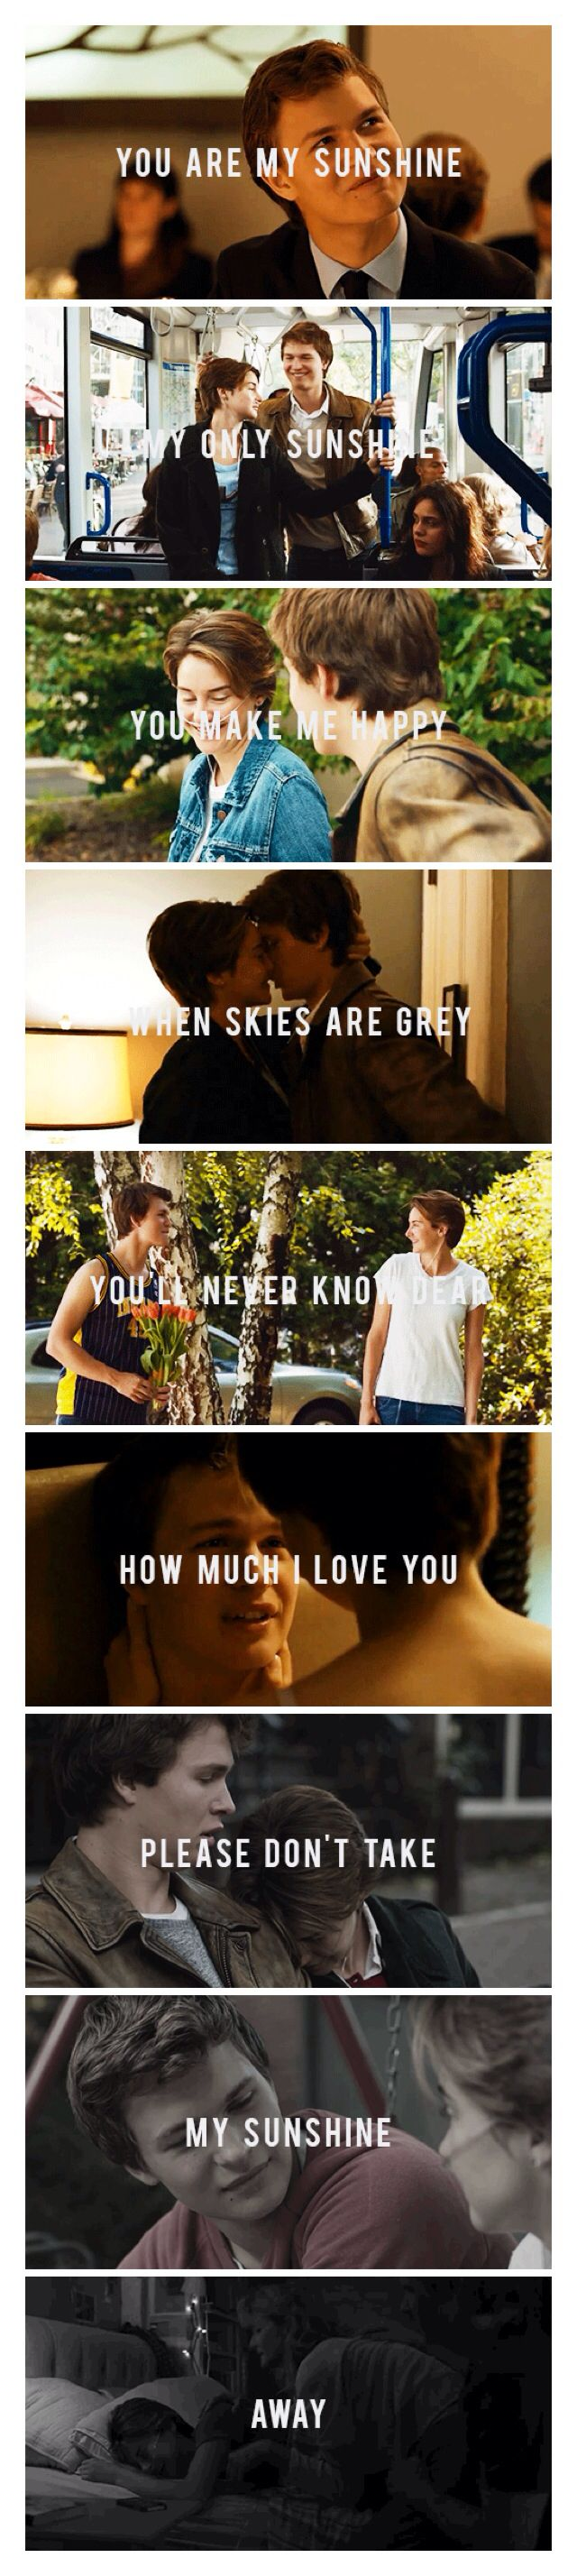 Augustus Water and Hazel Grace in The Fault in our Stars movie